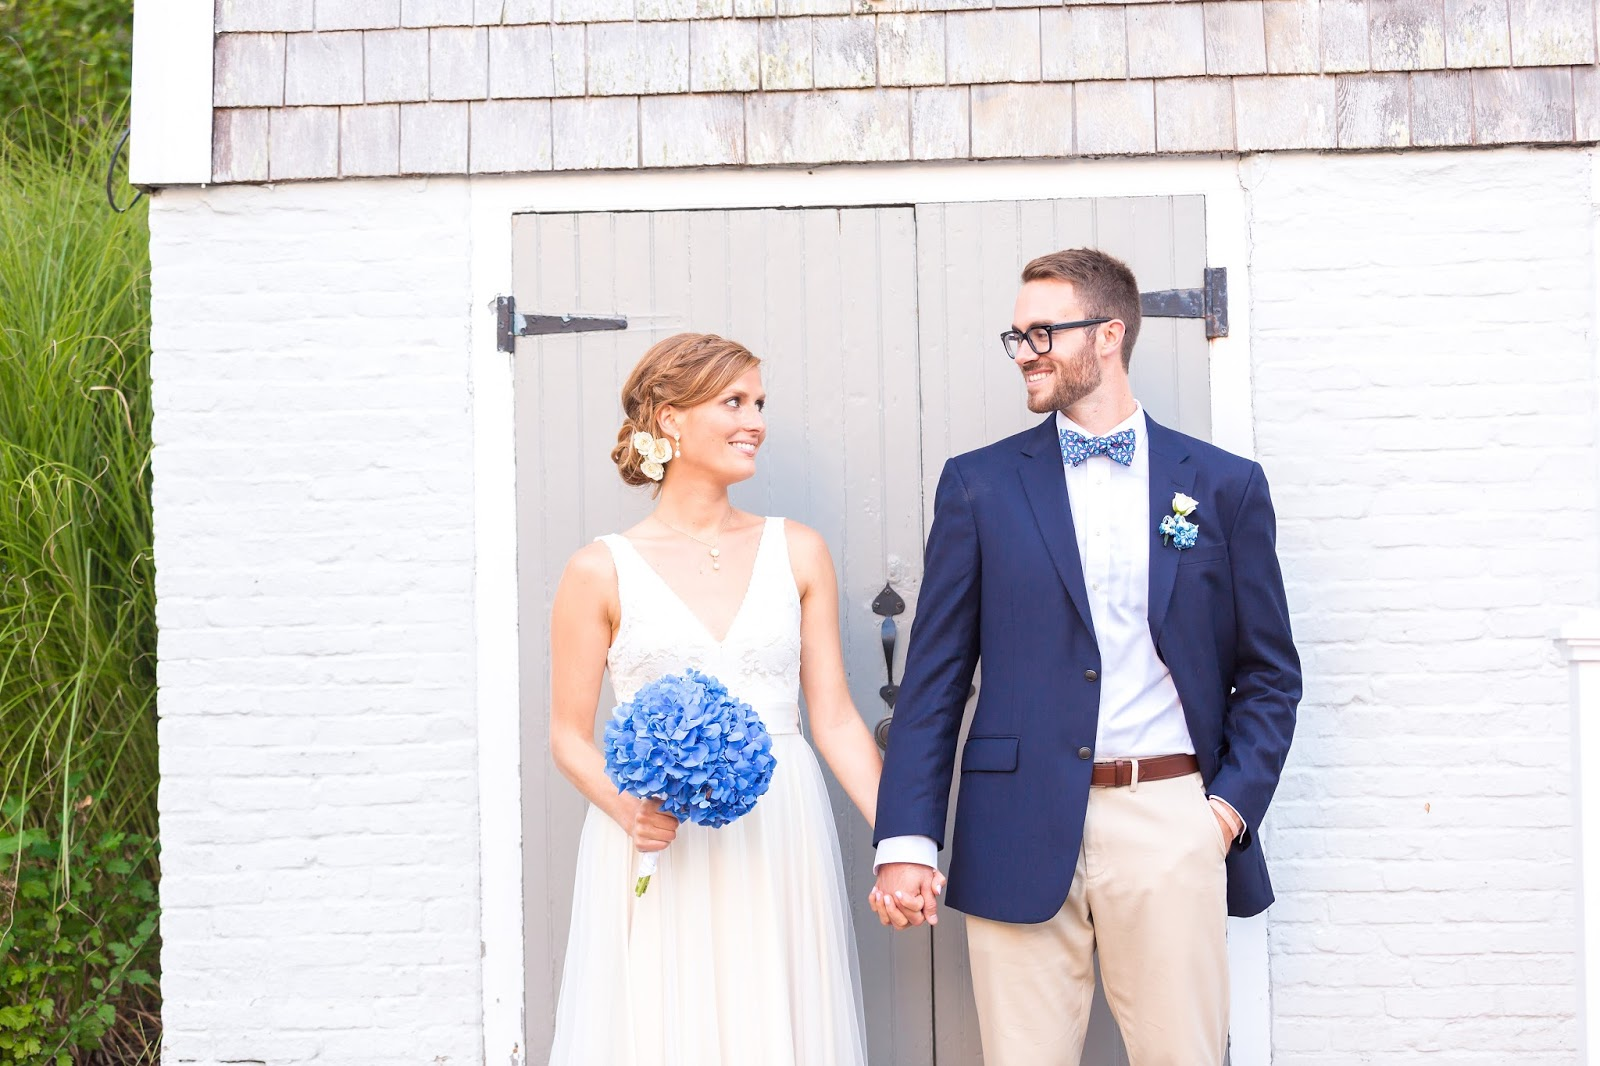 A Weekend Getaway Wedding in Nantucket